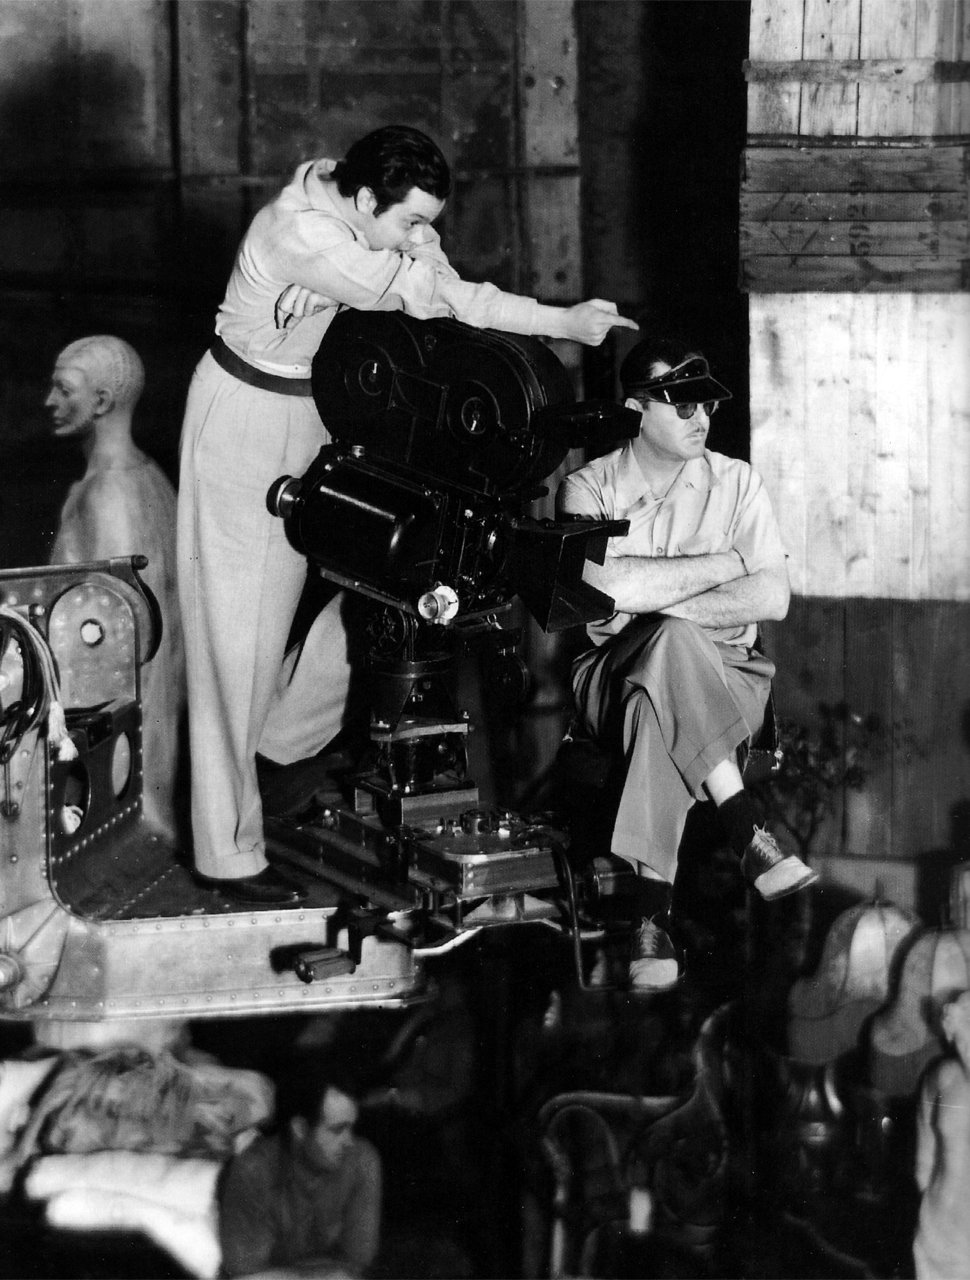 Welles during production of Citizen Kane (1941)